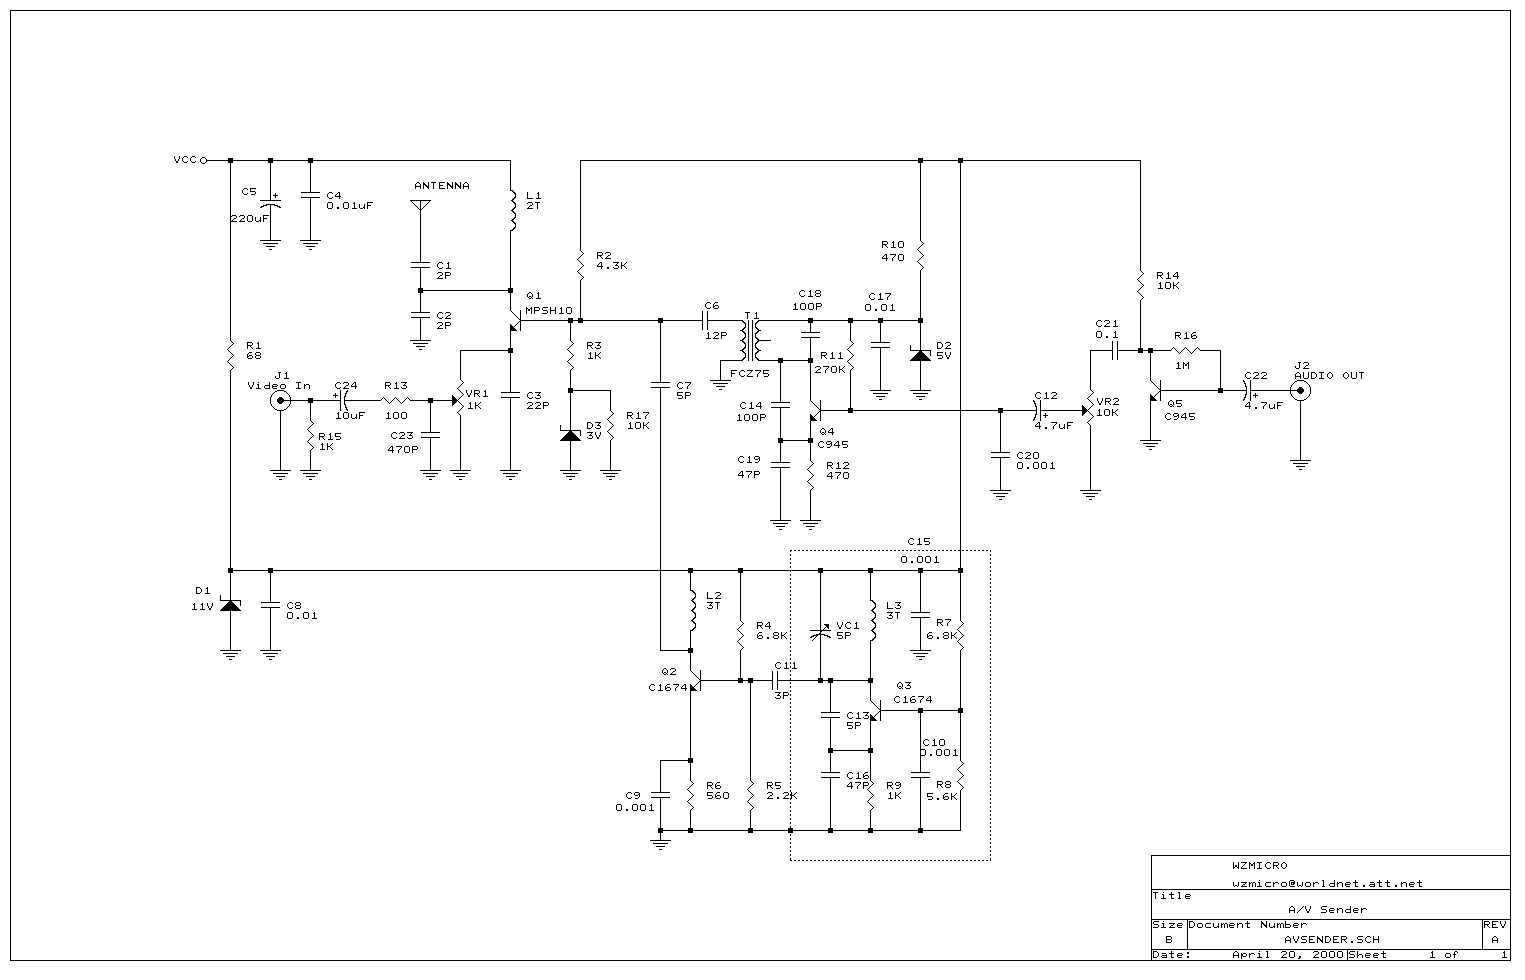 Schematic For Vcr Wiring Diagram Professional Block Hpdeskjet1220c Wireless Video Transmitter Crest Cre 55471 Crosley Cr73